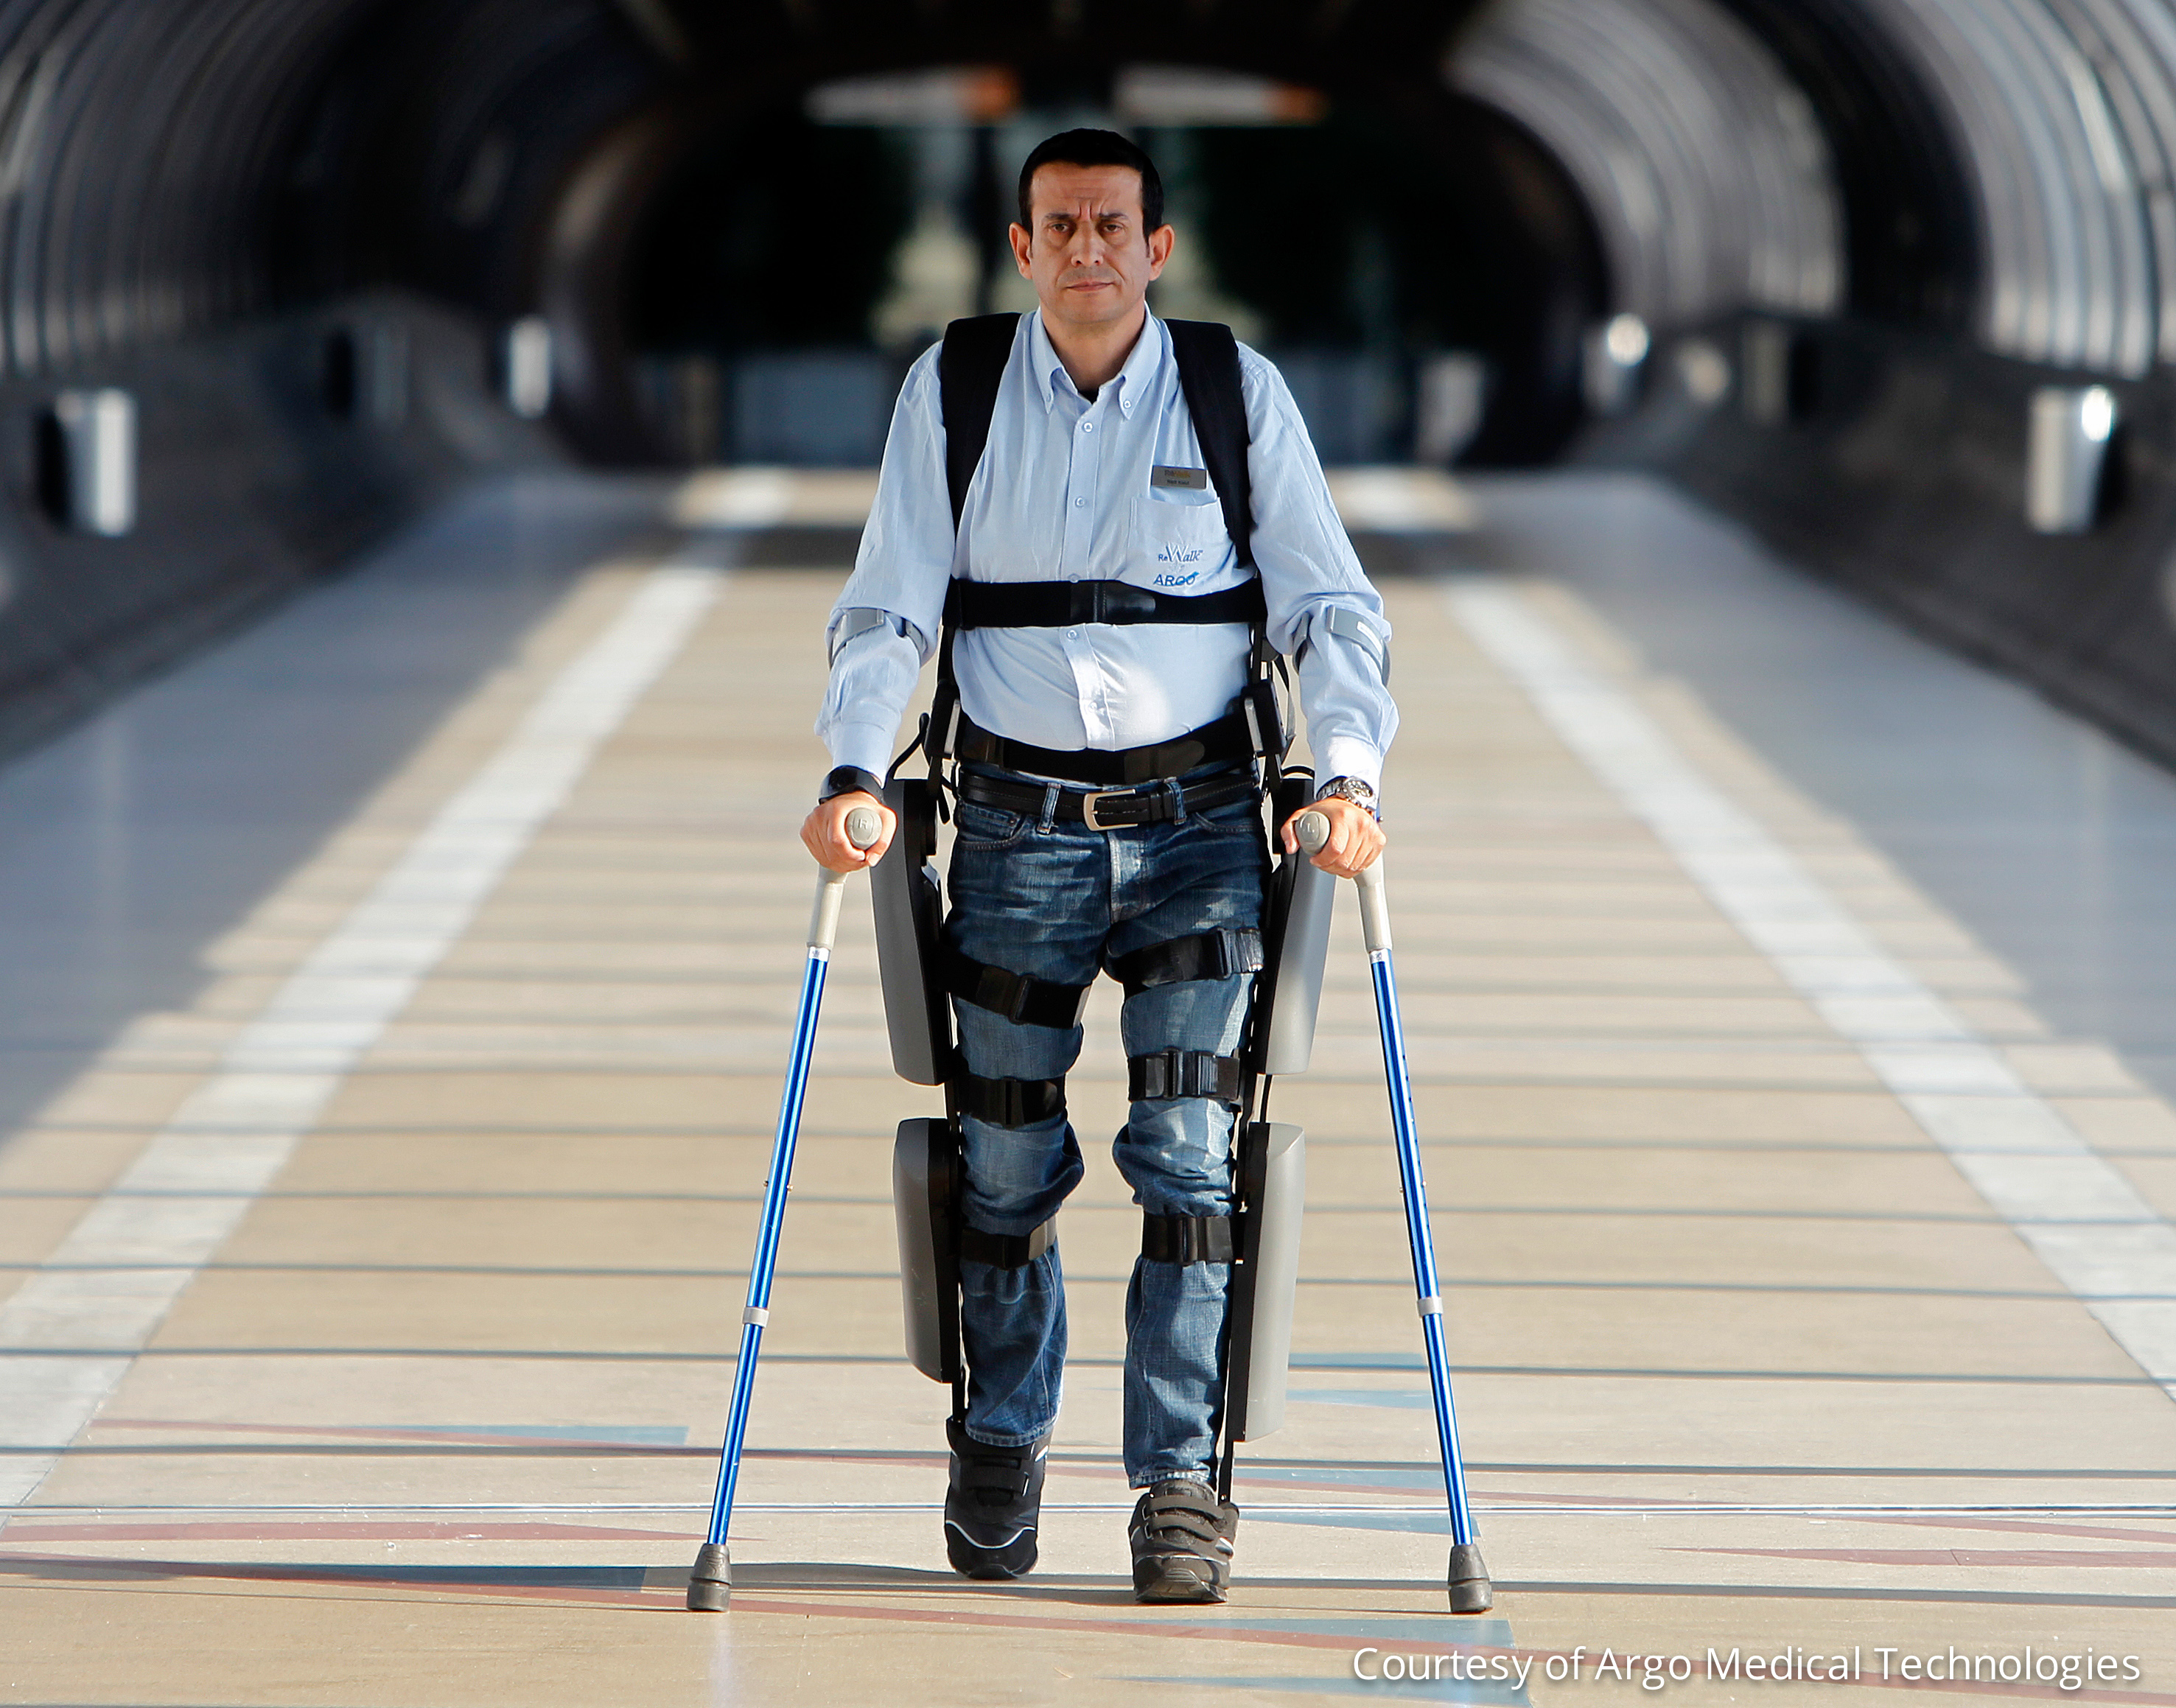 FDA clears ReWalk exoskeleton that lets paraplegics walk again - CNET